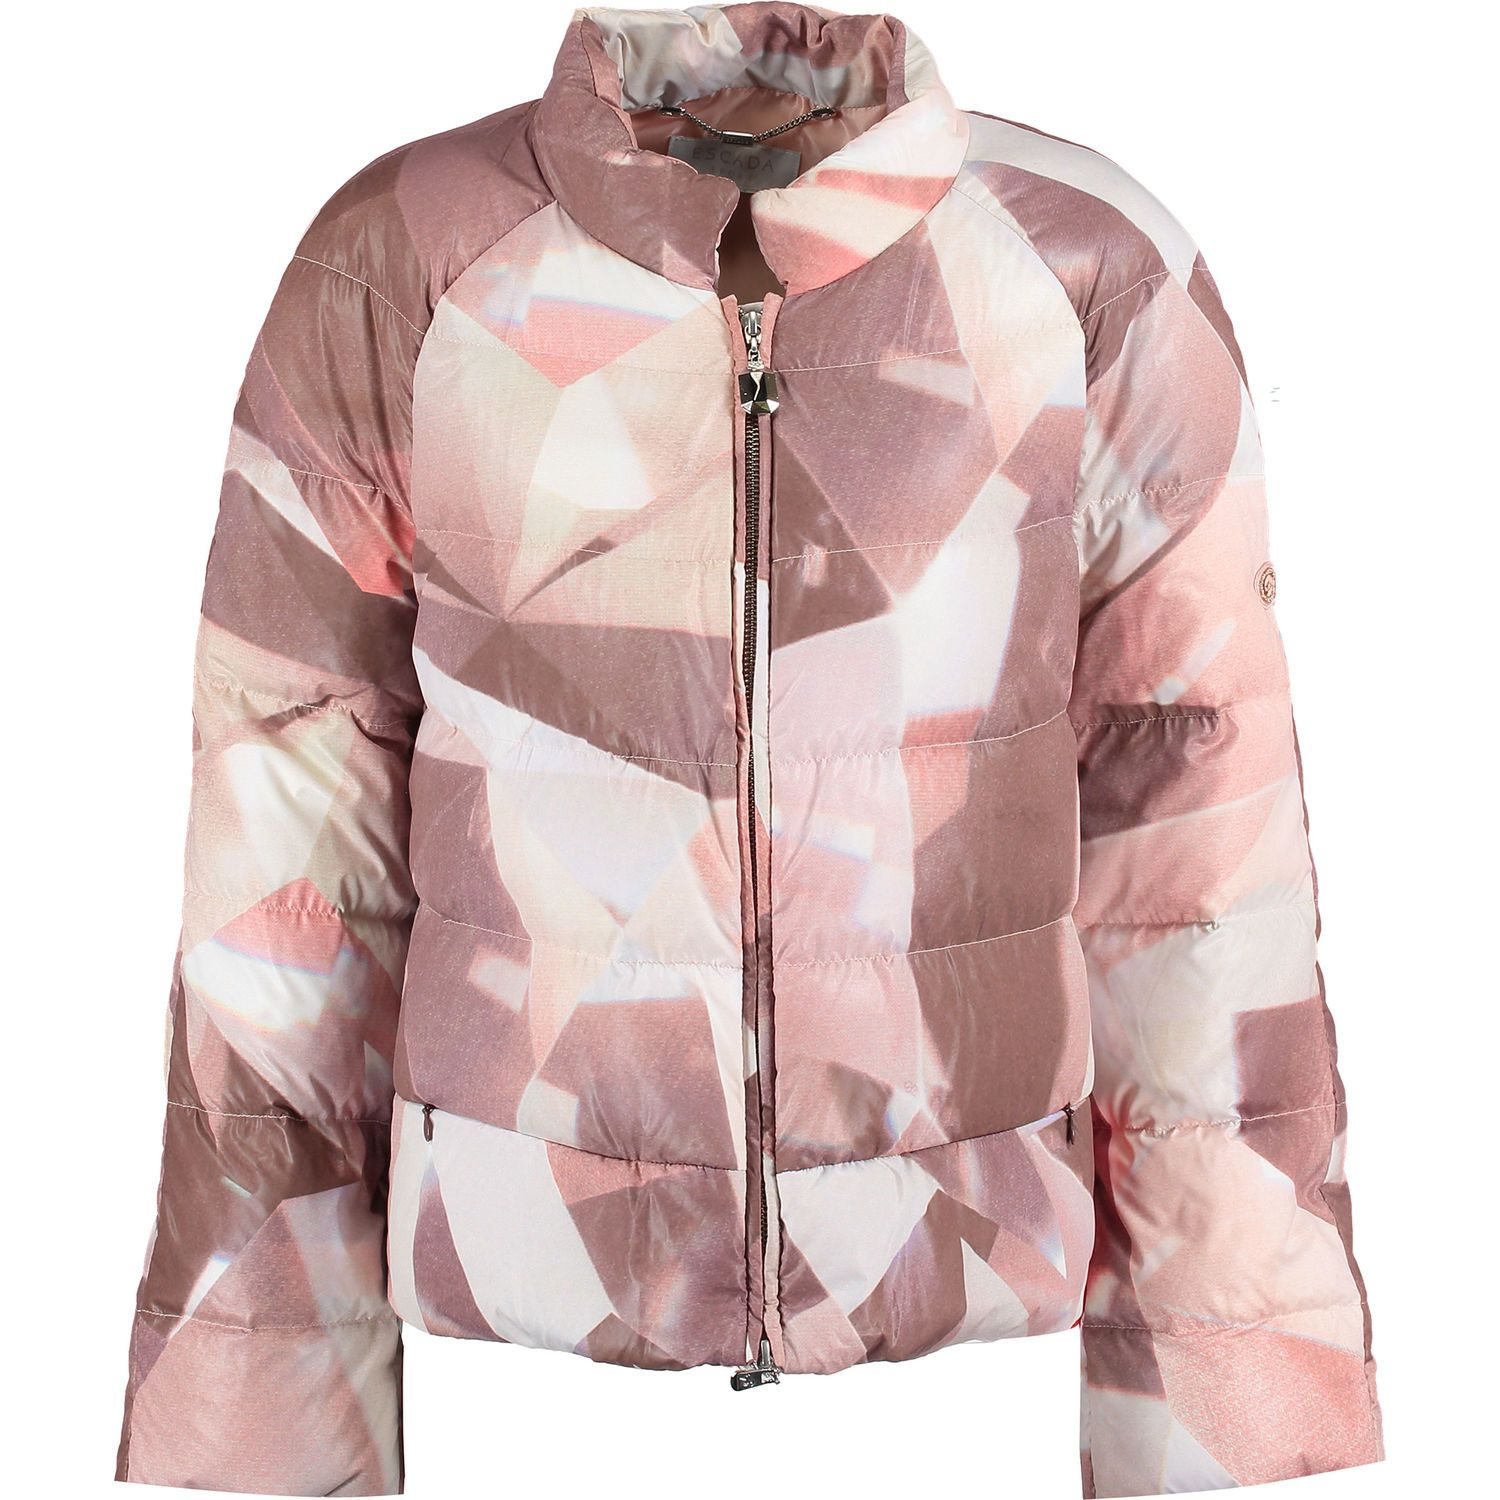 c75bb0b7a Pink Feather   Down Jacket - Jackets   Coats - Clothing - Women - TK ...